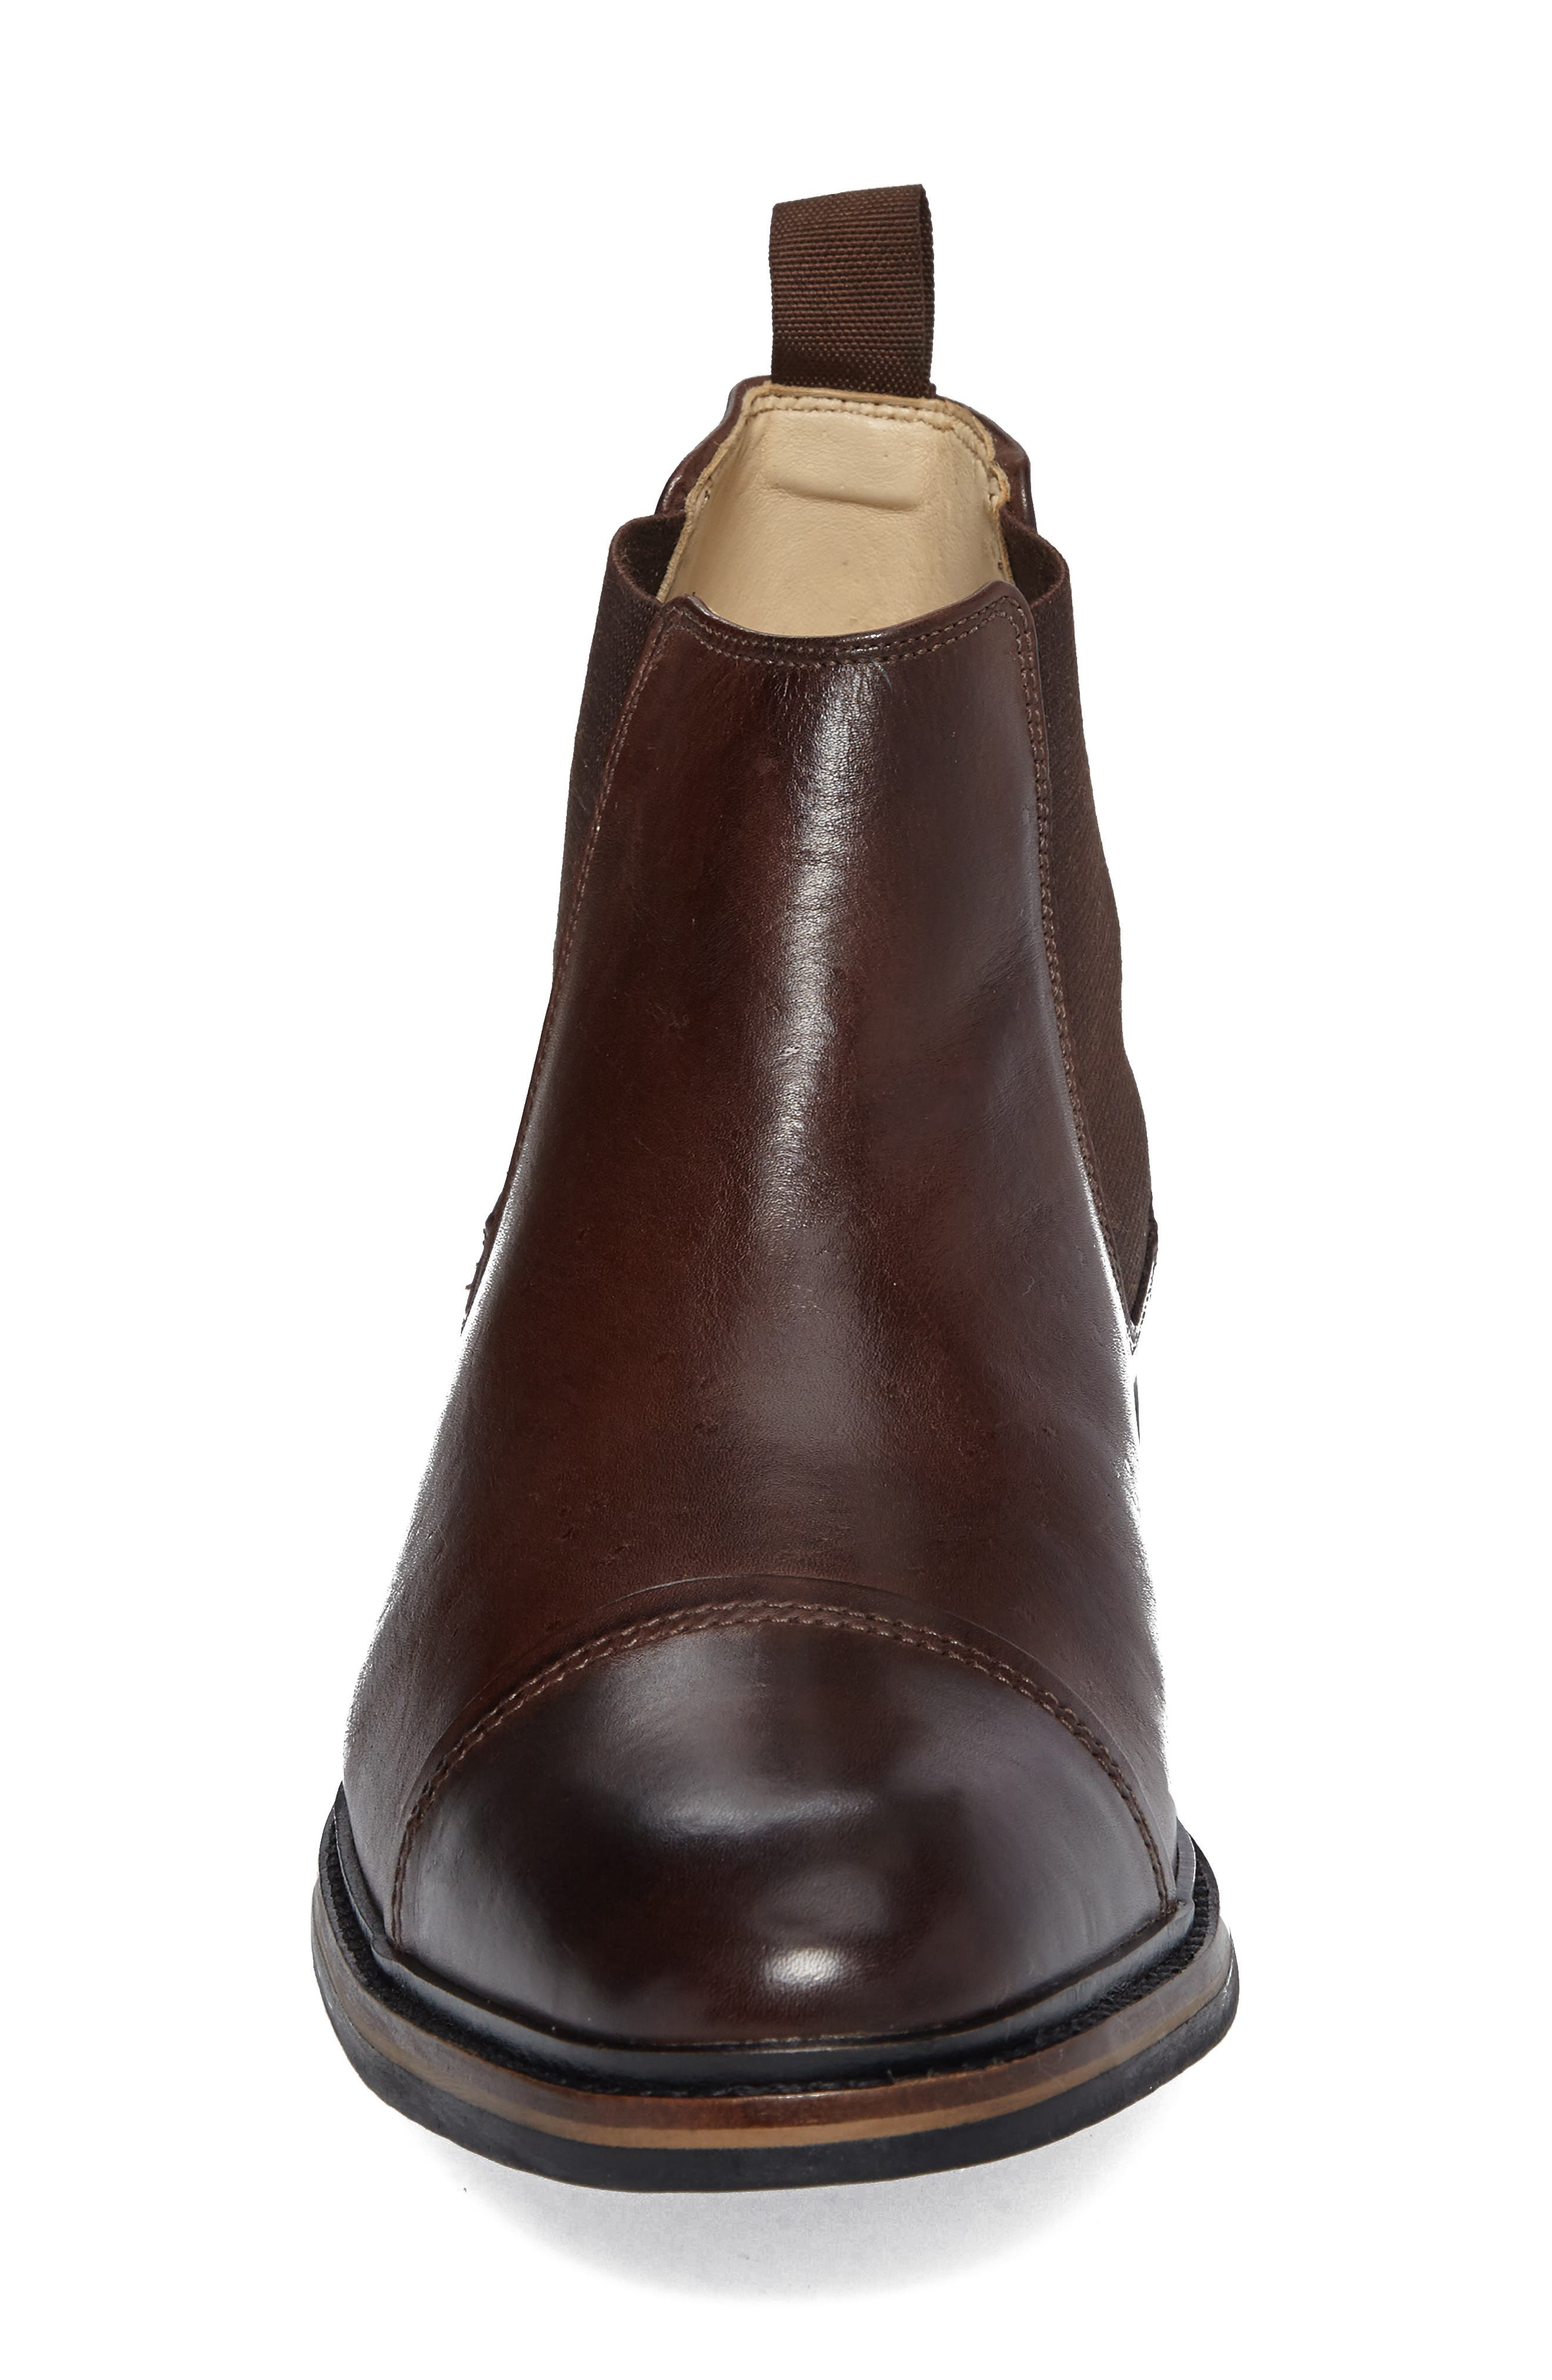 Floriano Chelsea Boot,                             Alternate thumbnail 4, color,                             Touch Castanho